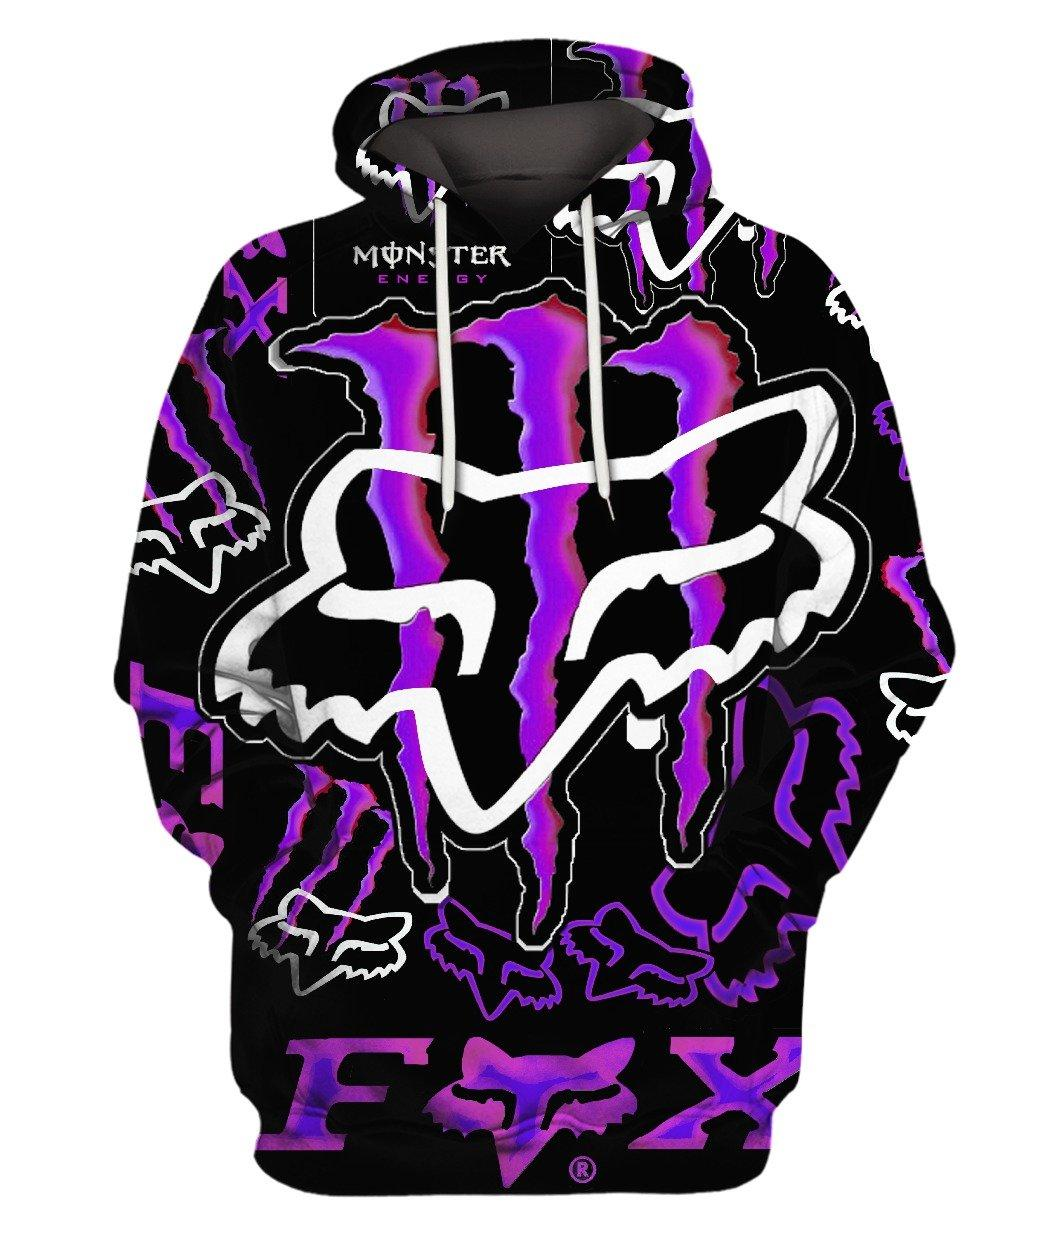 Fox Monster Energy Purple 3d Full Print 3d Graphic Printed Tshirt Hoodie Up To 5xl